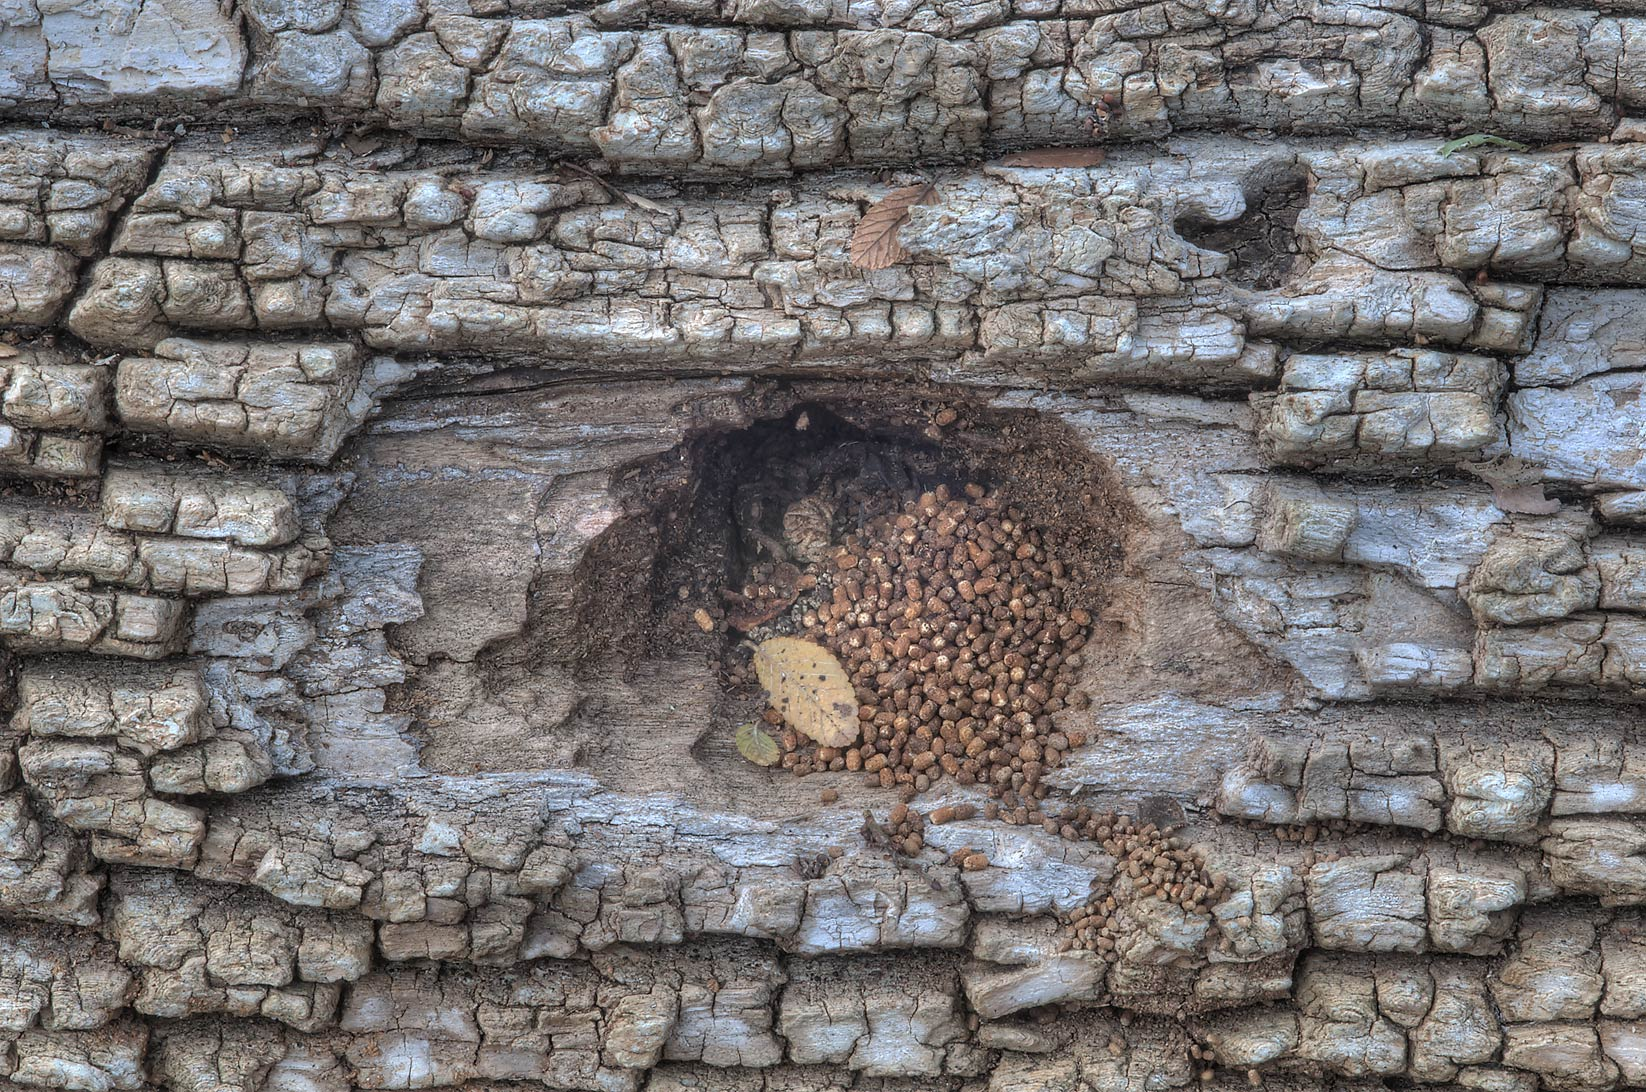 Hole in a fallen tree with excrements near Racoon...Creek Park. College Station, Texas